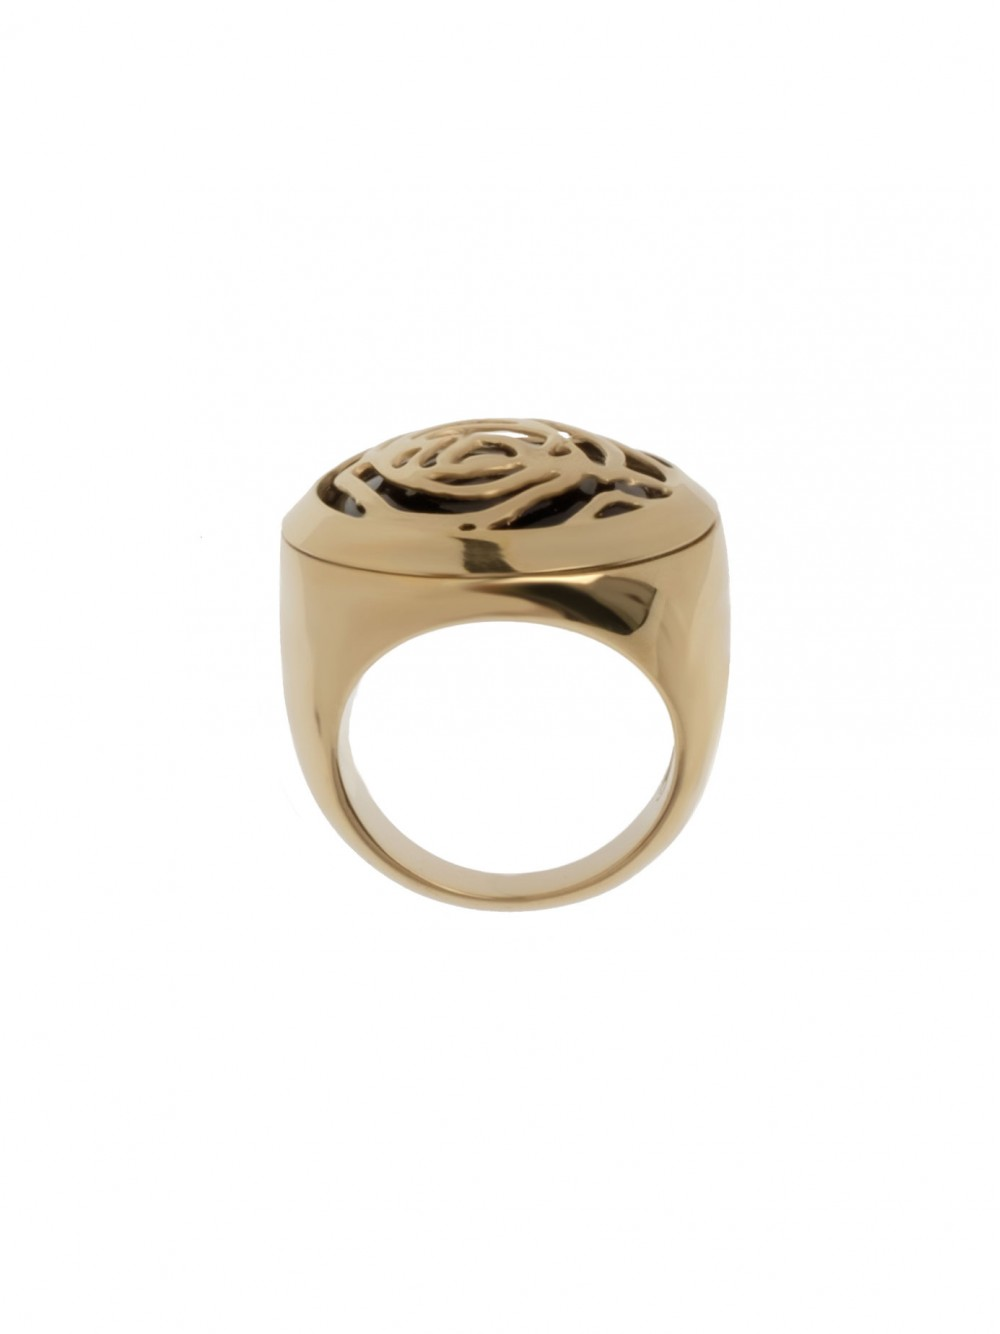 RING BLACK ROSE